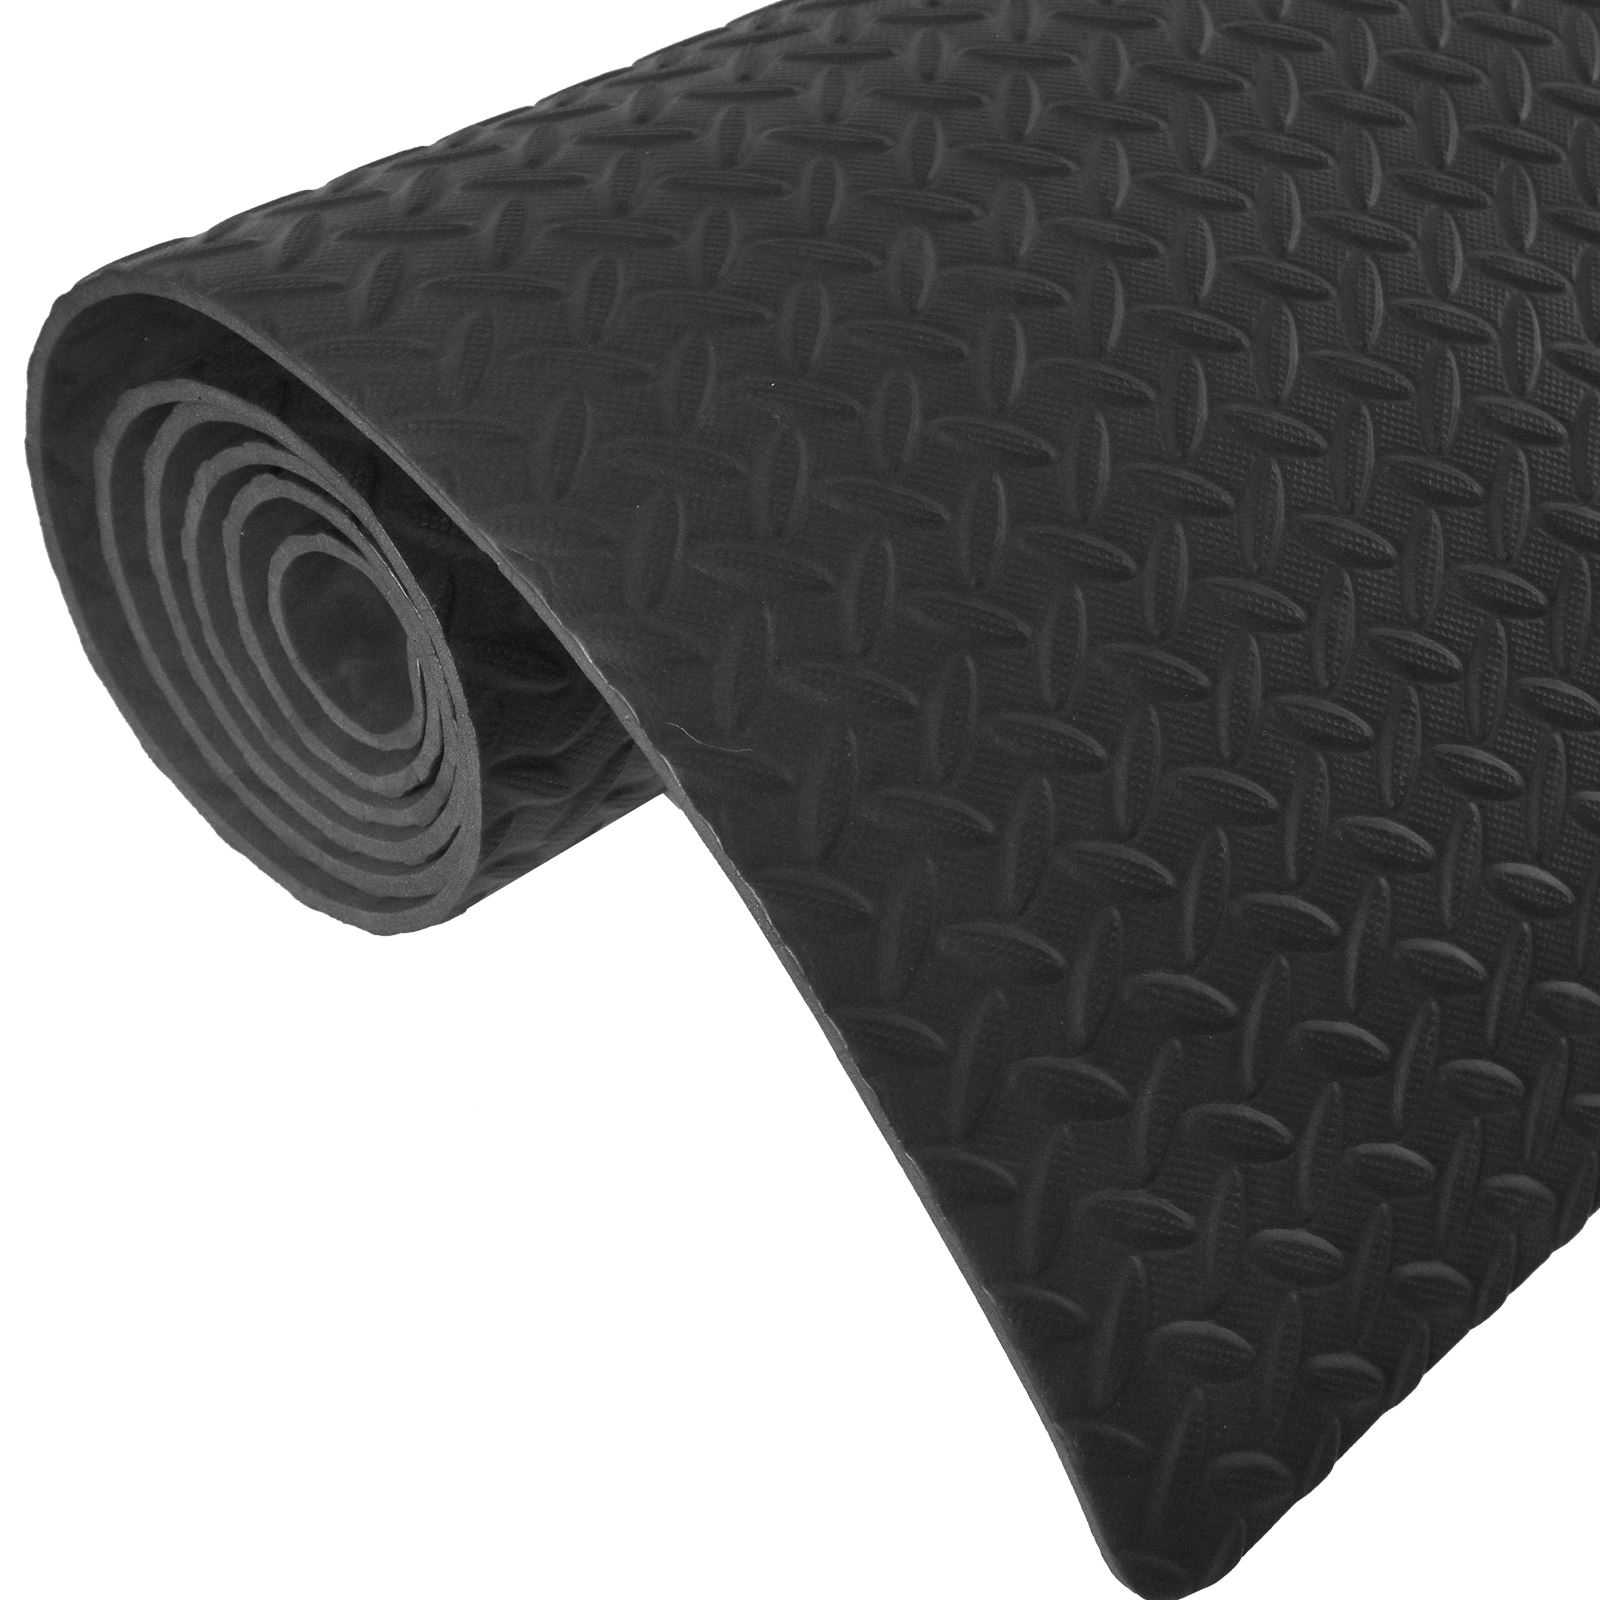 Eva soft foam interlocking floor mats exercise gym kids